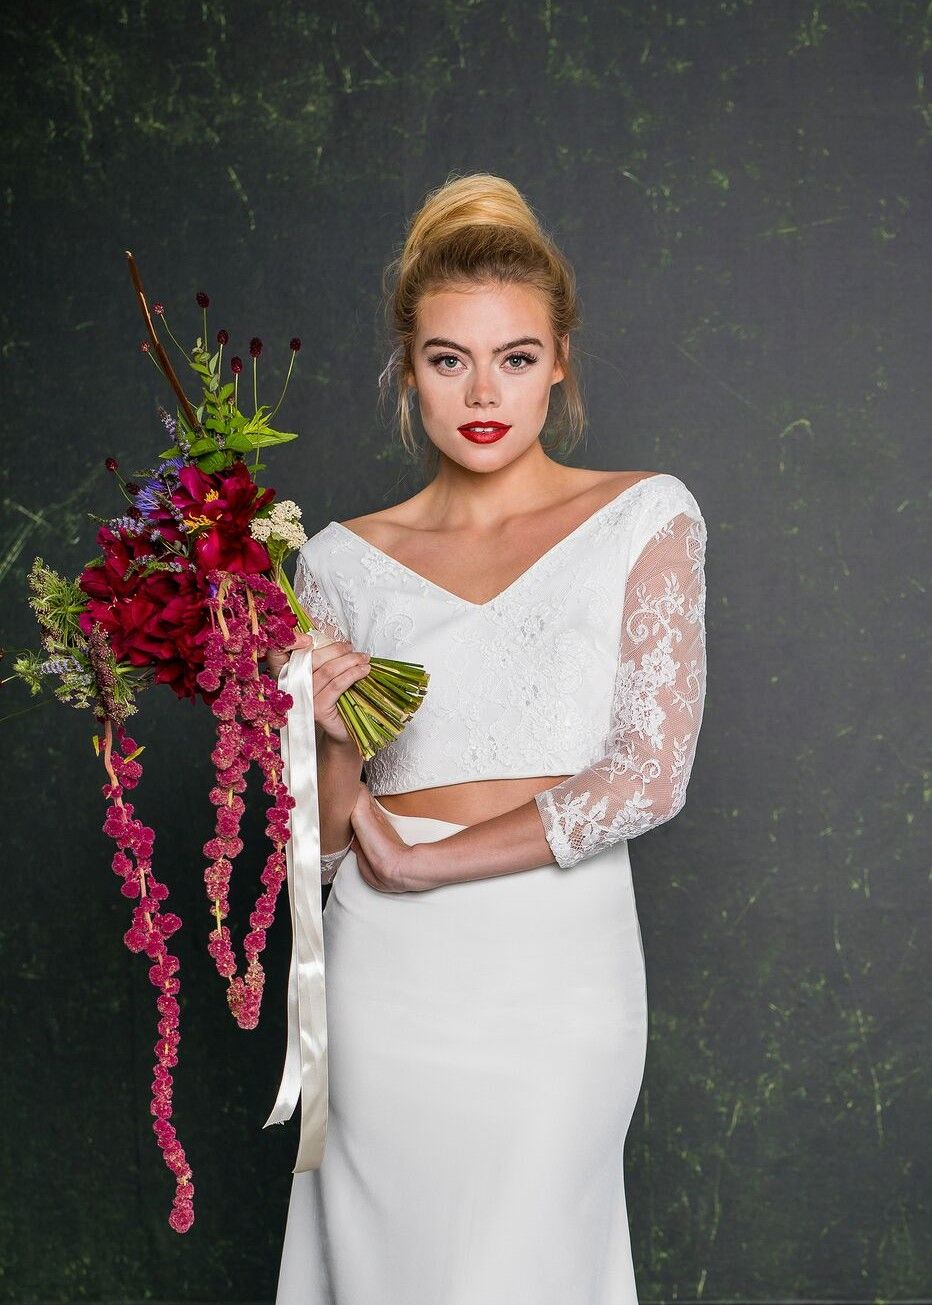 House of brides wedding dresses  Stunning alternative wedding flowers and outfit Shop House of